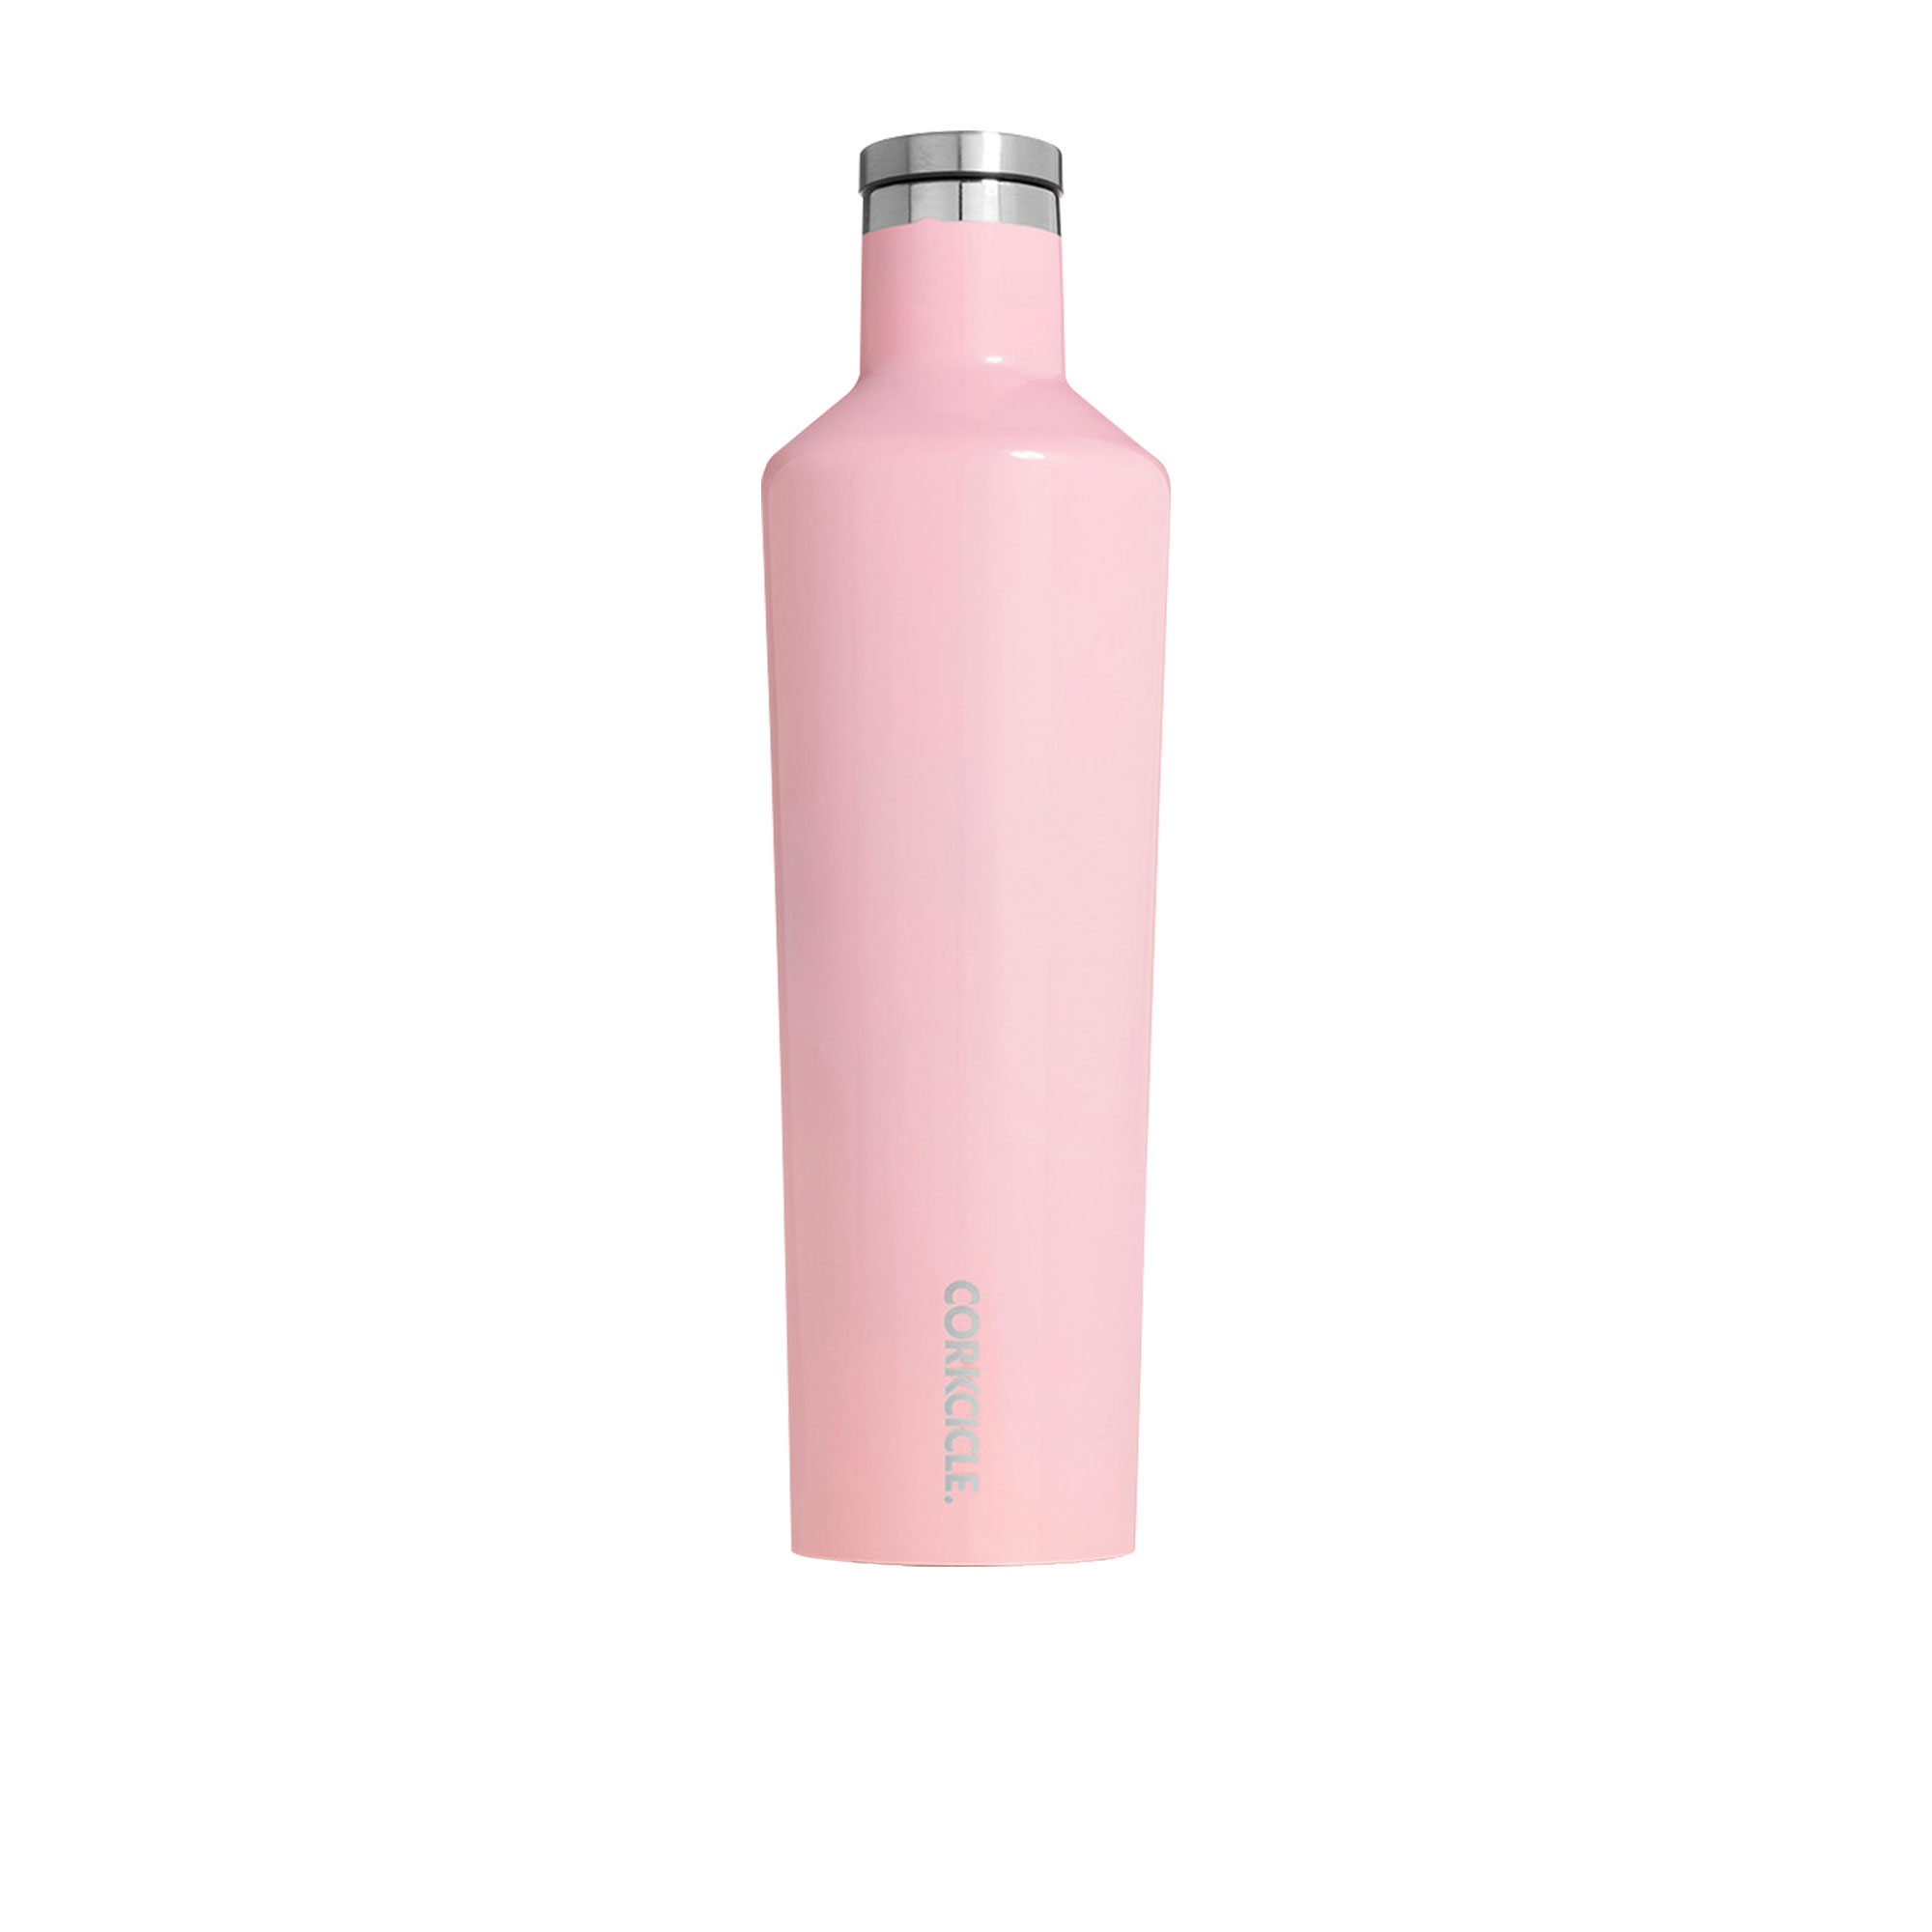 Corkcicle Classic Canteen Insulated Drink Bottle 750ml Rose Quartz